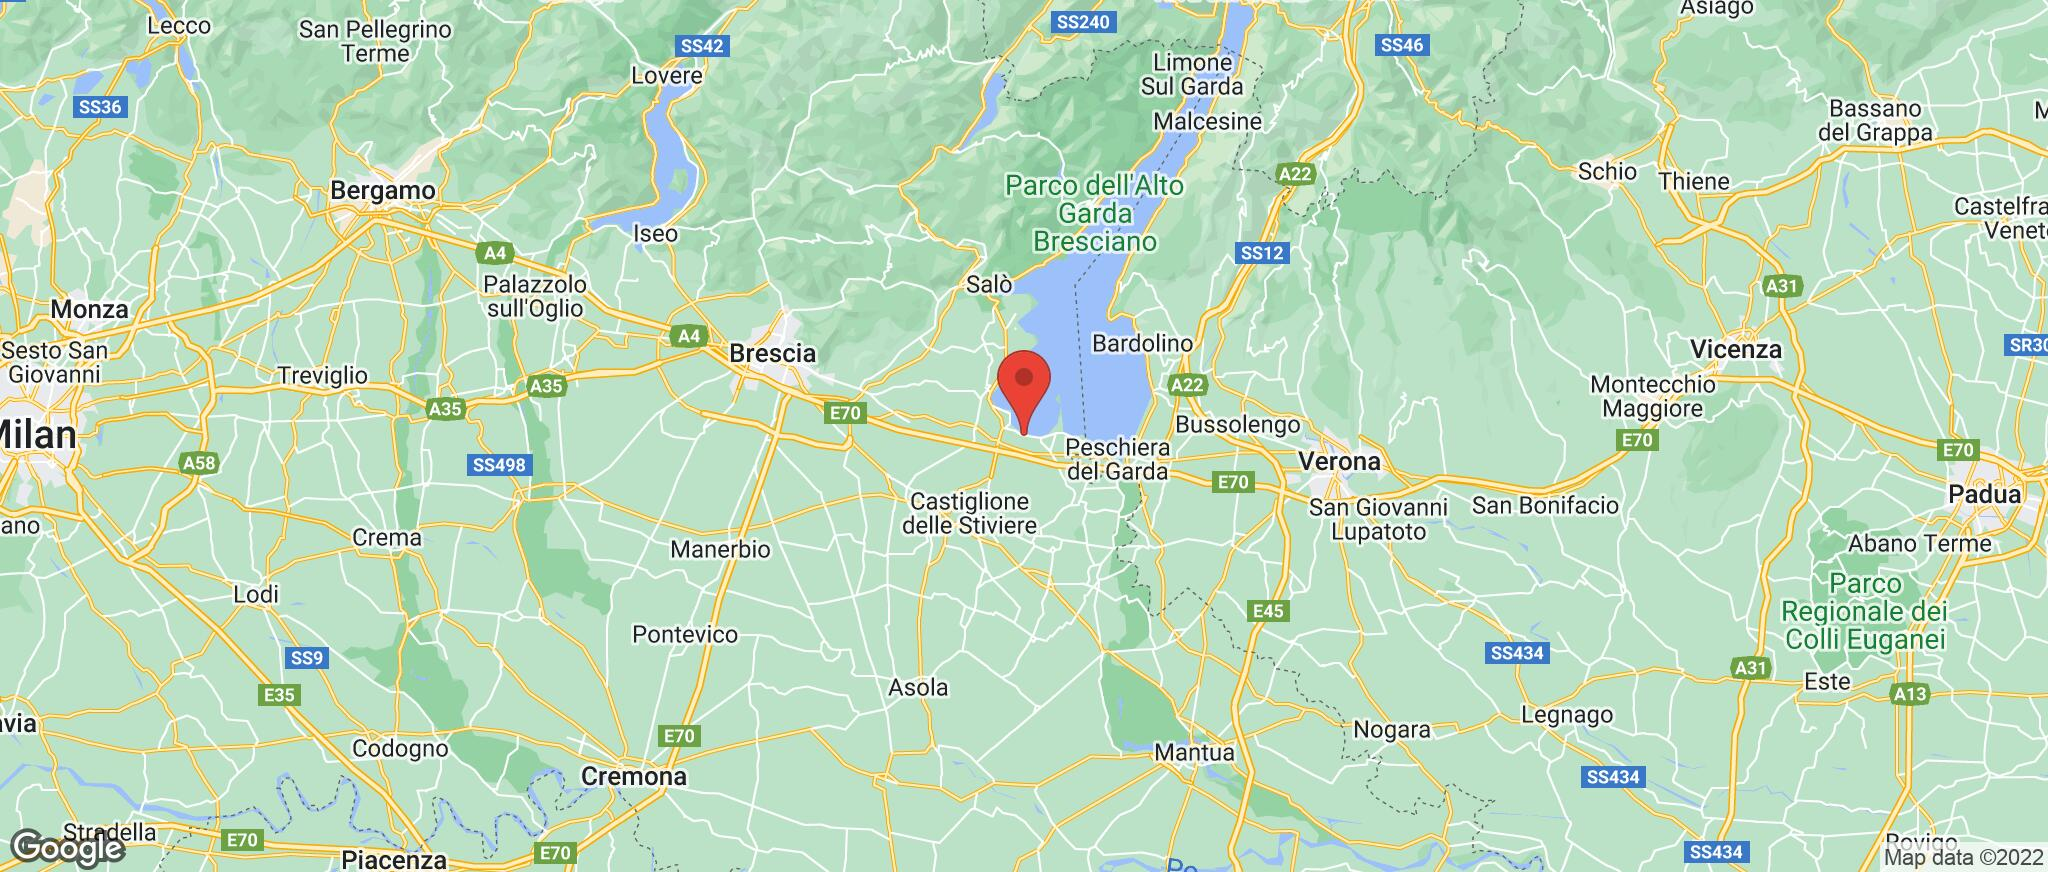 Map showing the location of Desenzano